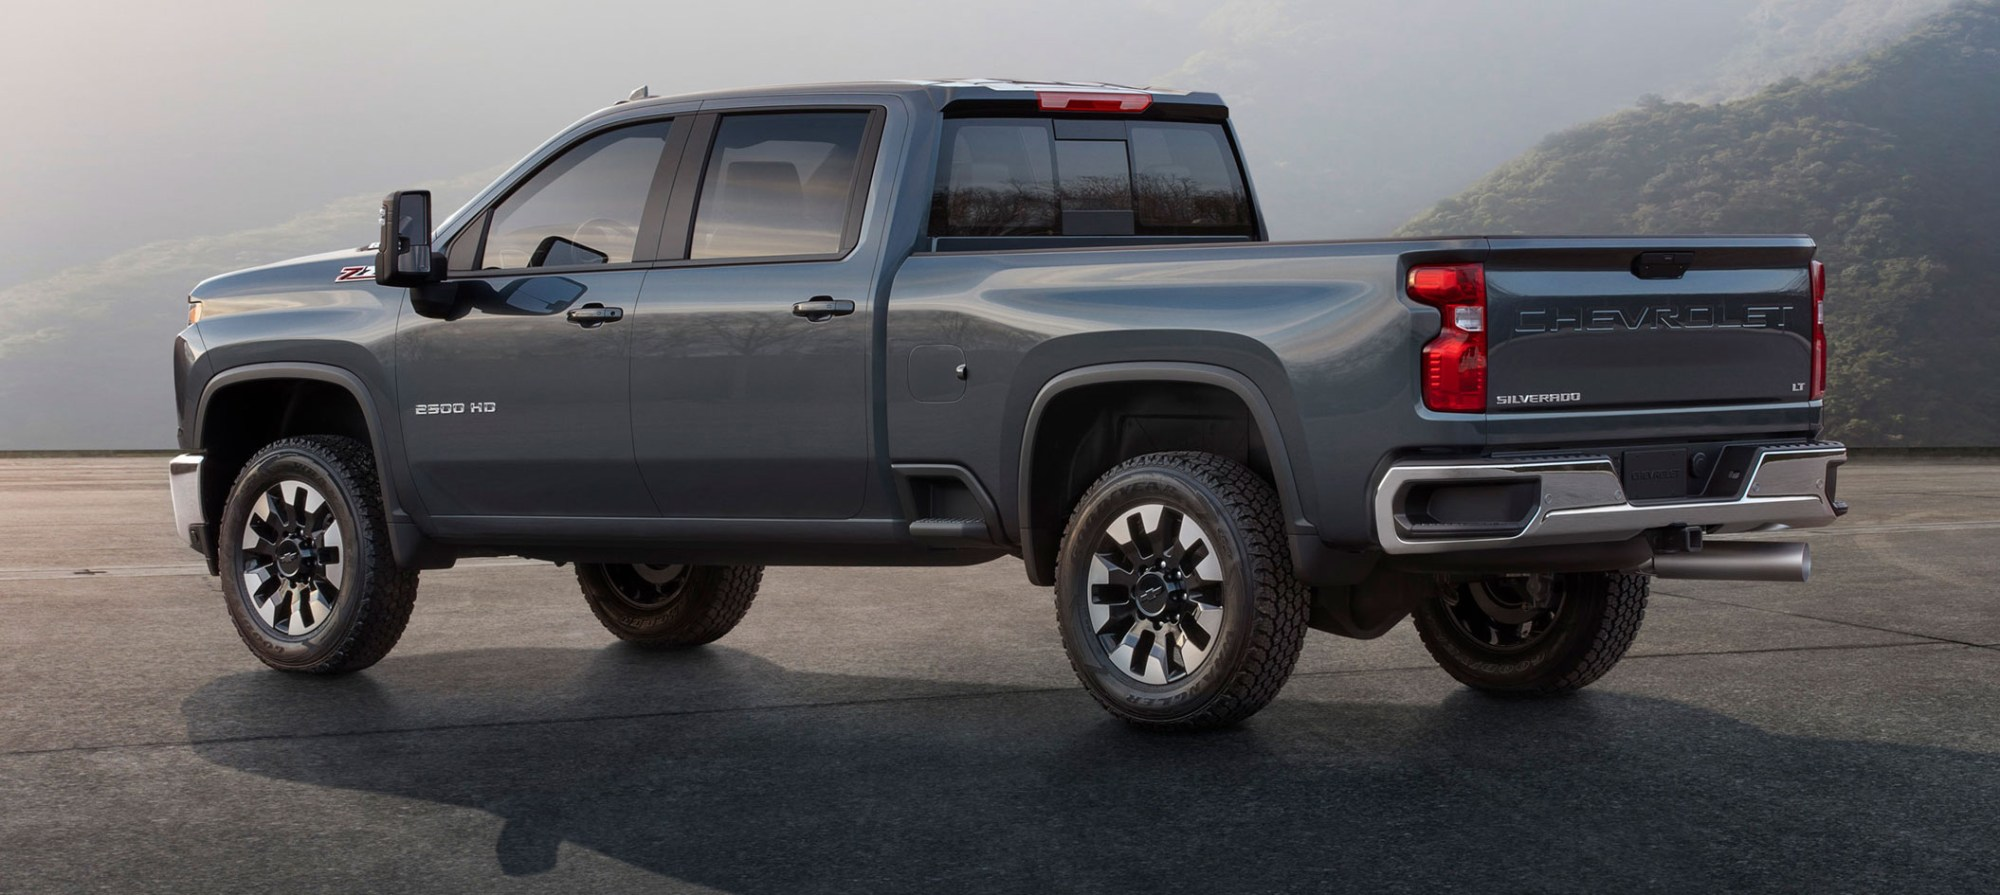 hight resolution of the chevrolet design team is listening to what their customers want the team took into consideration and put into action the earlier feedback they